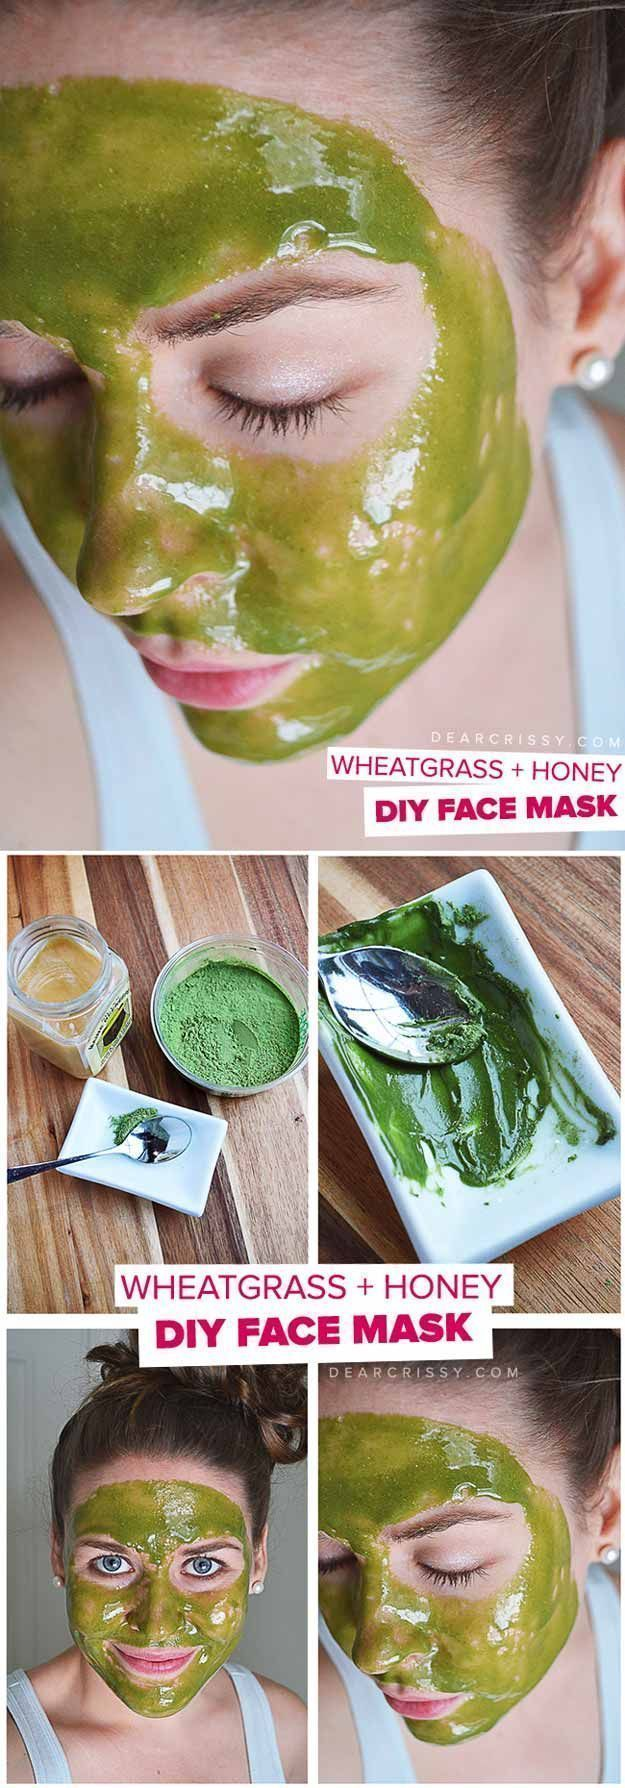 DIY Face Masks for Every Skin Problem - DIY Wheatgrass & Honey Face Mask - Easy Homemade Face Masks For Blackheads, For Acne, For Dry Skin and Remedies That Will Make Your Skin Glow - These Peel Ideas are Great For Teens and For Kids - Coconut Oil Recipes That Are Great For Pores and For Wrinkles - https://thegoddess.com/diy-face-masks #homemadefacemasksforkids #homemadefacemasksforwrinkles